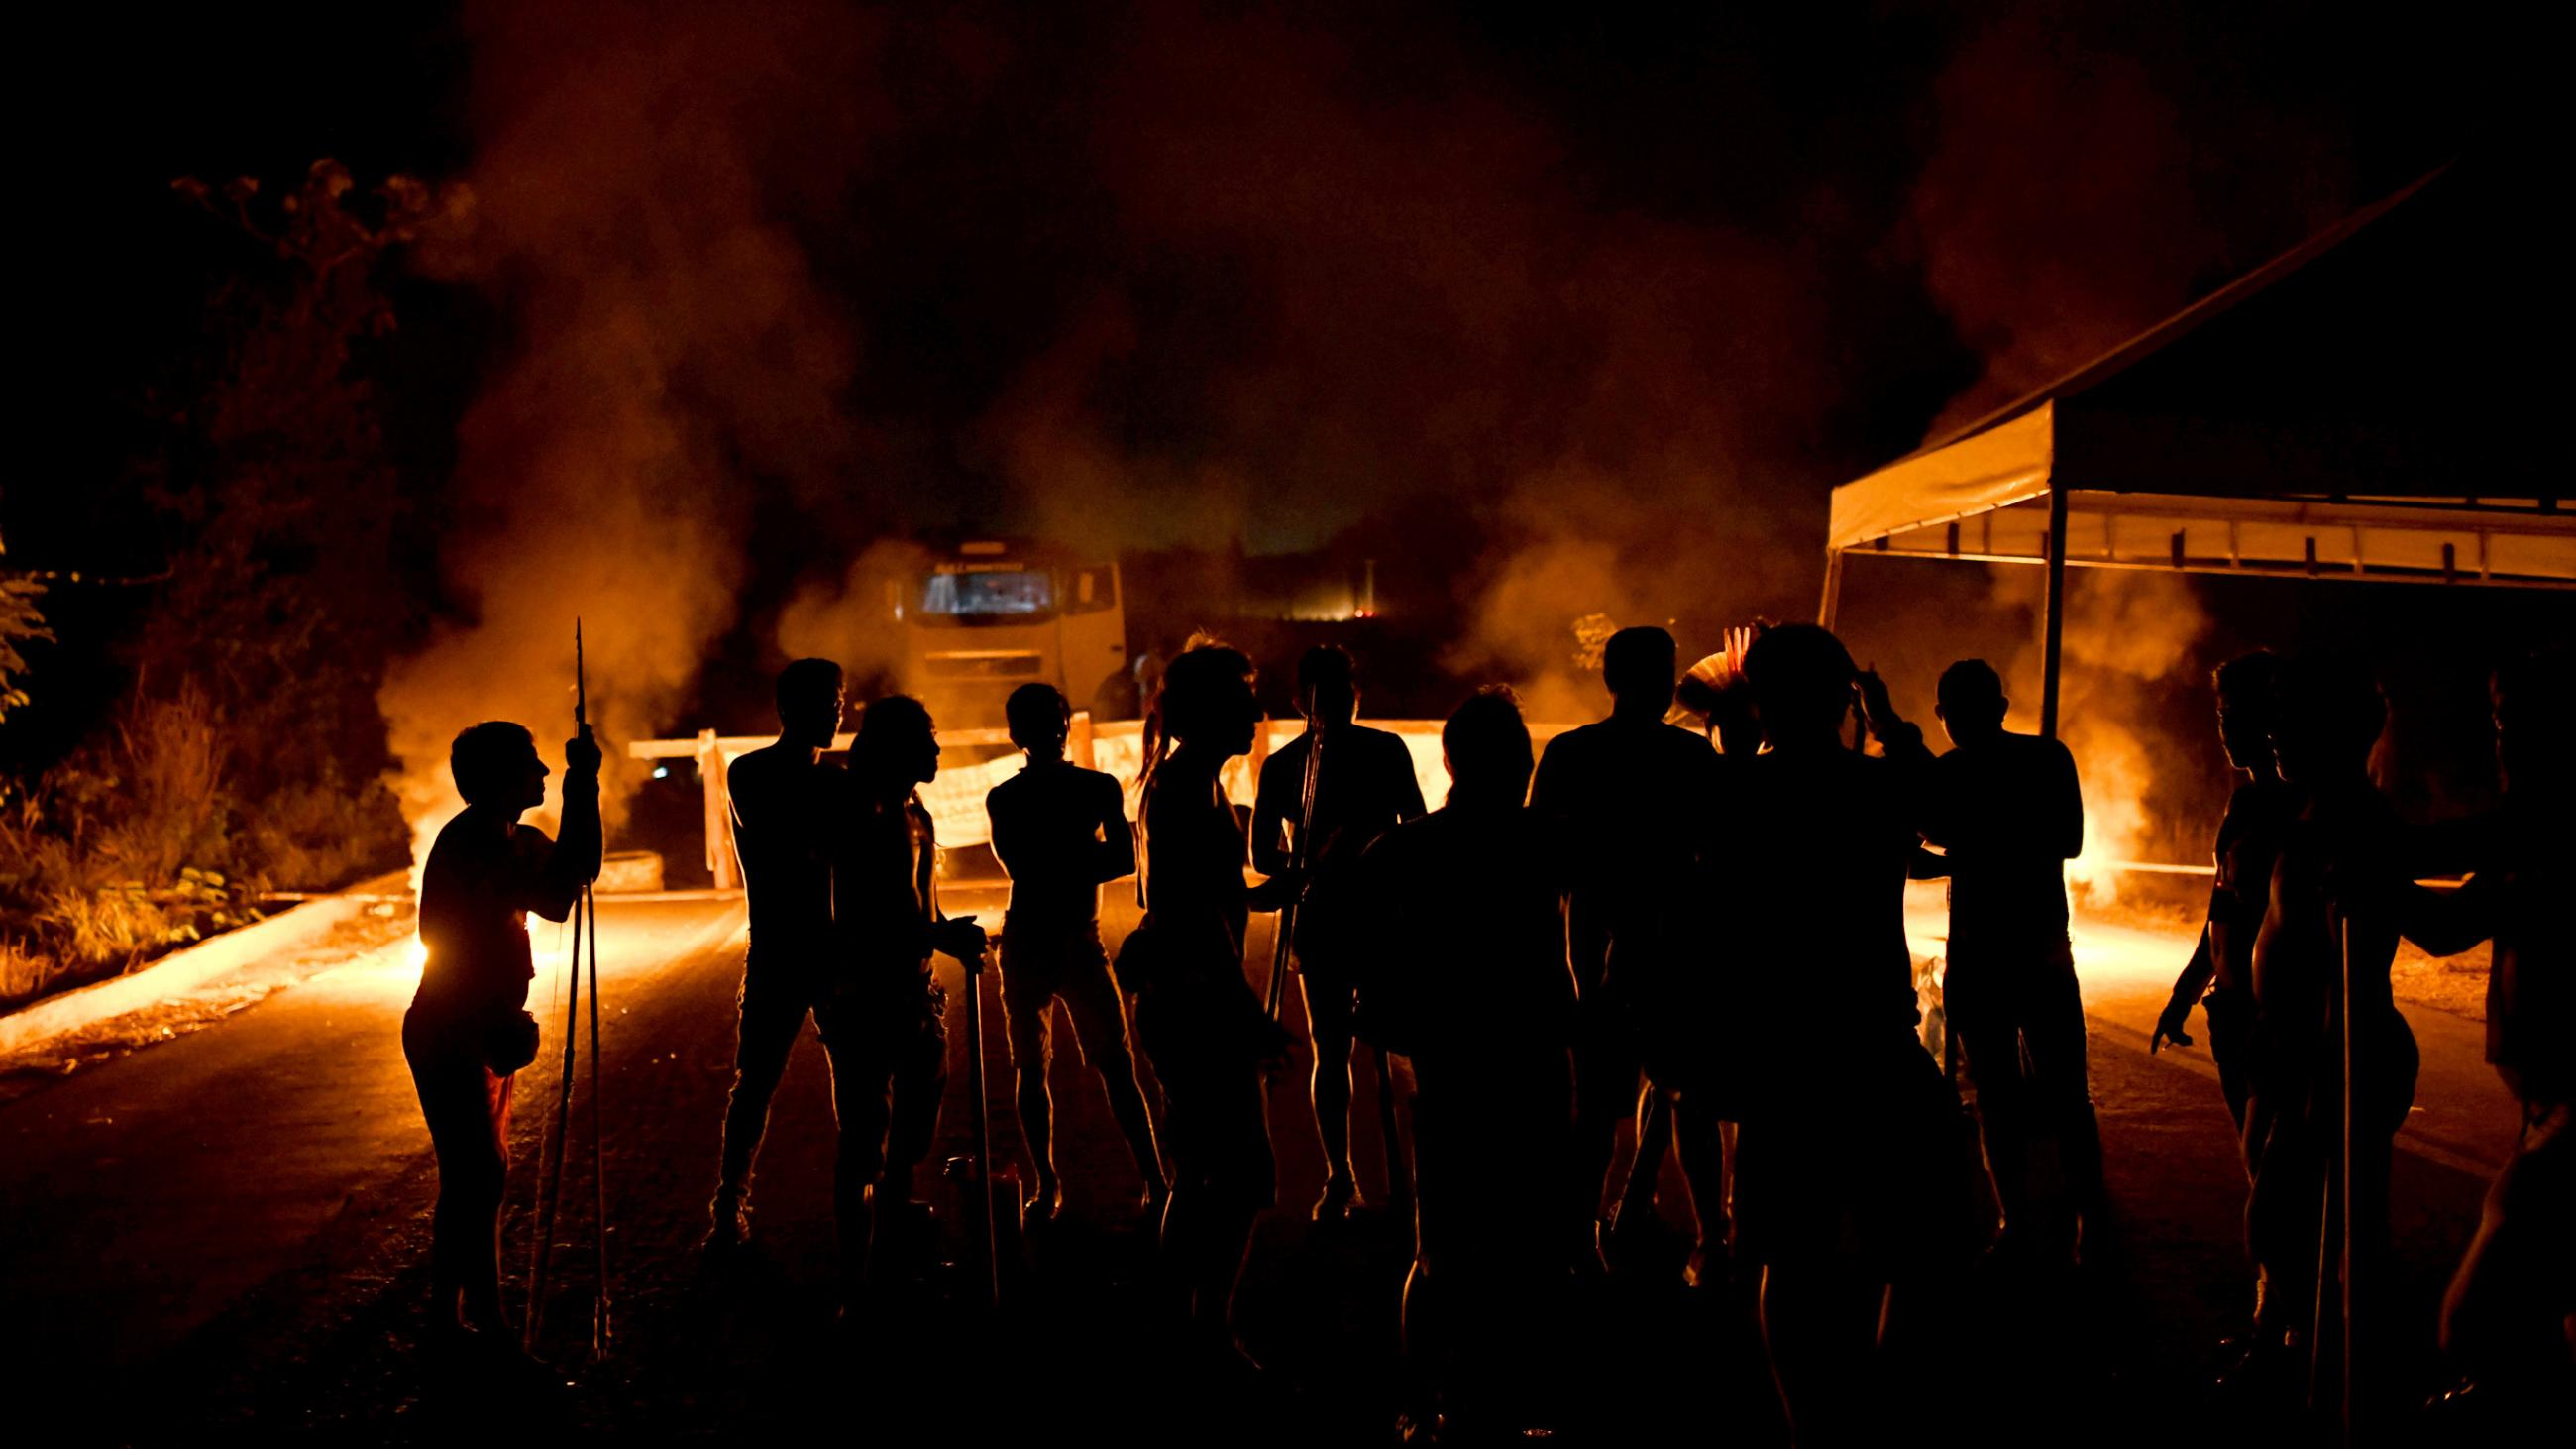 The image shows a large number of protesters at night silhouetted against a fire burning.